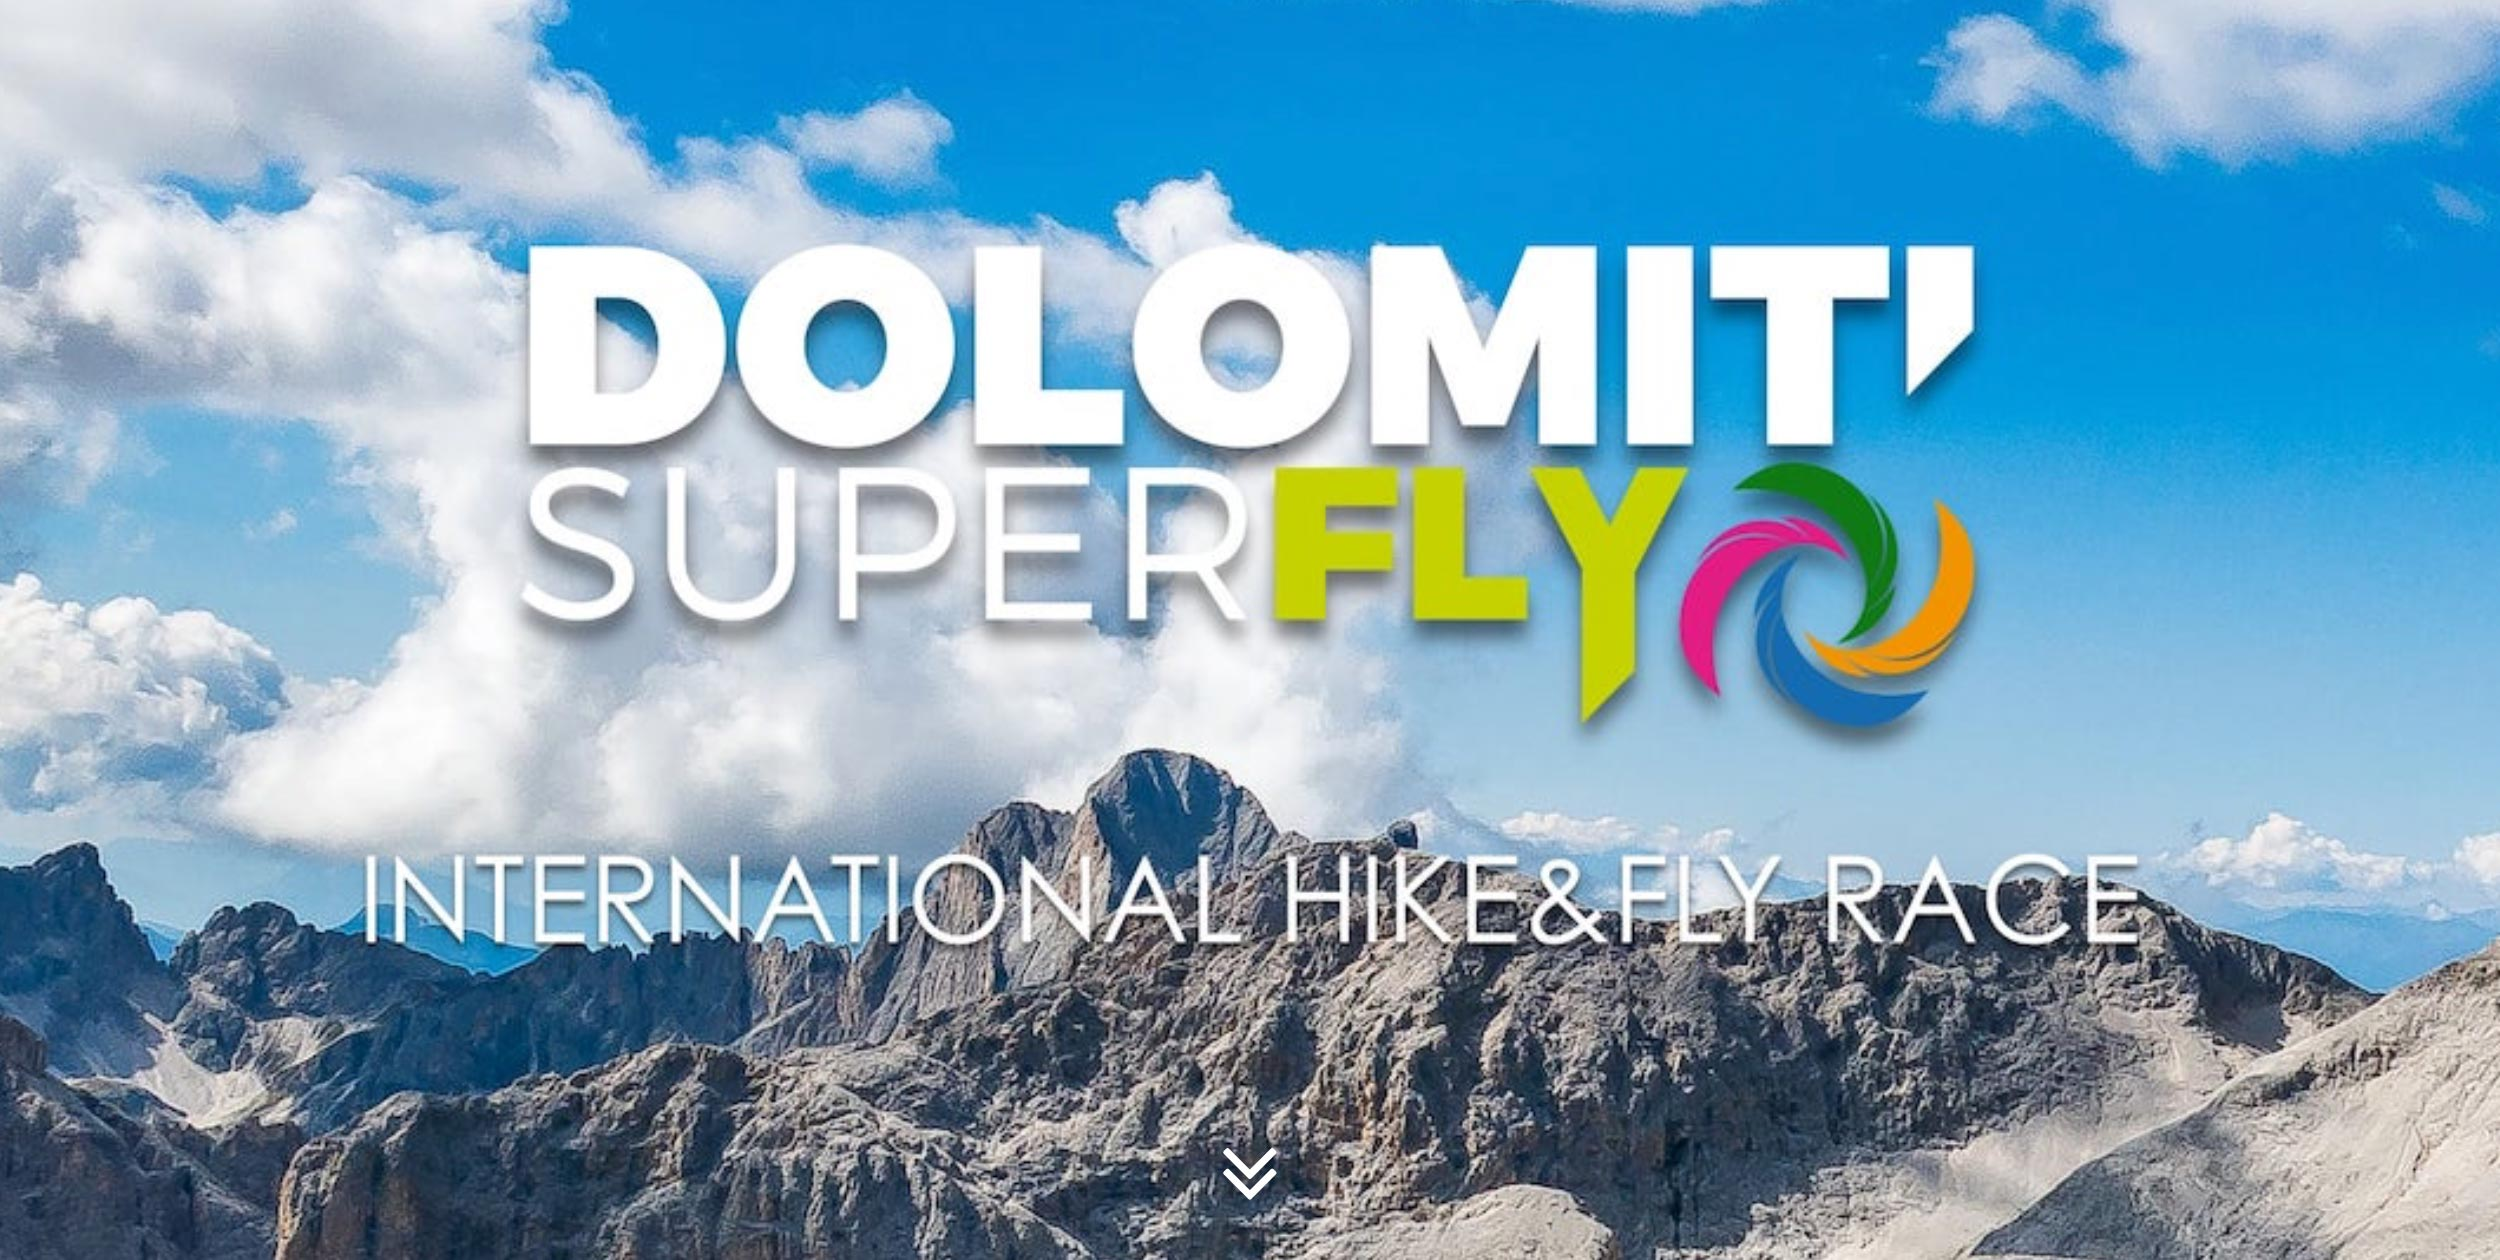 Dolomiti Super Fly 2020